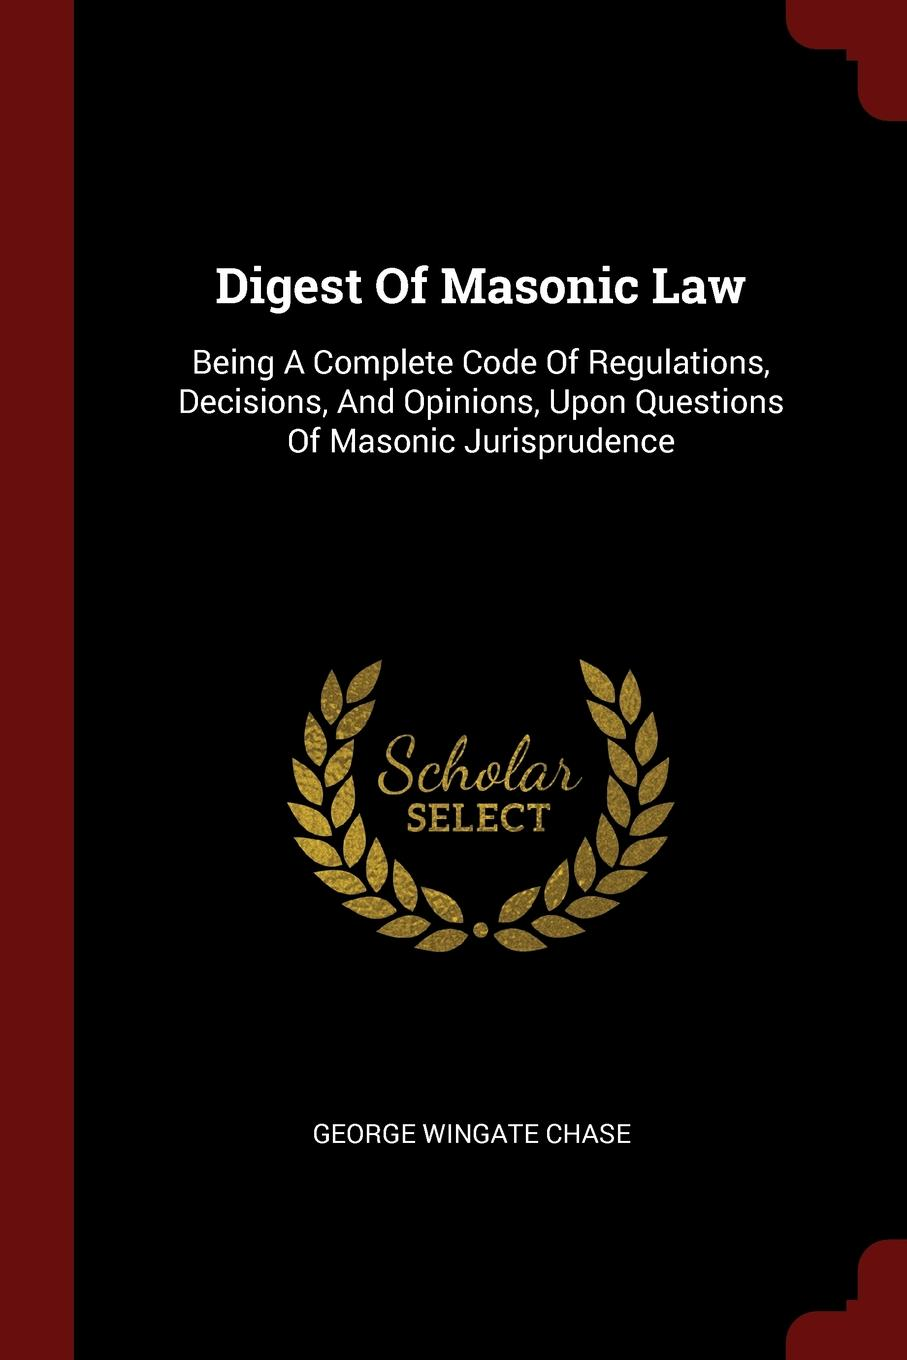 Digest Of Masonic Law. Being A Complete Code Of Regulations, Decisions, And Opinions, Upon Questions Of Masonic Jurisprudence